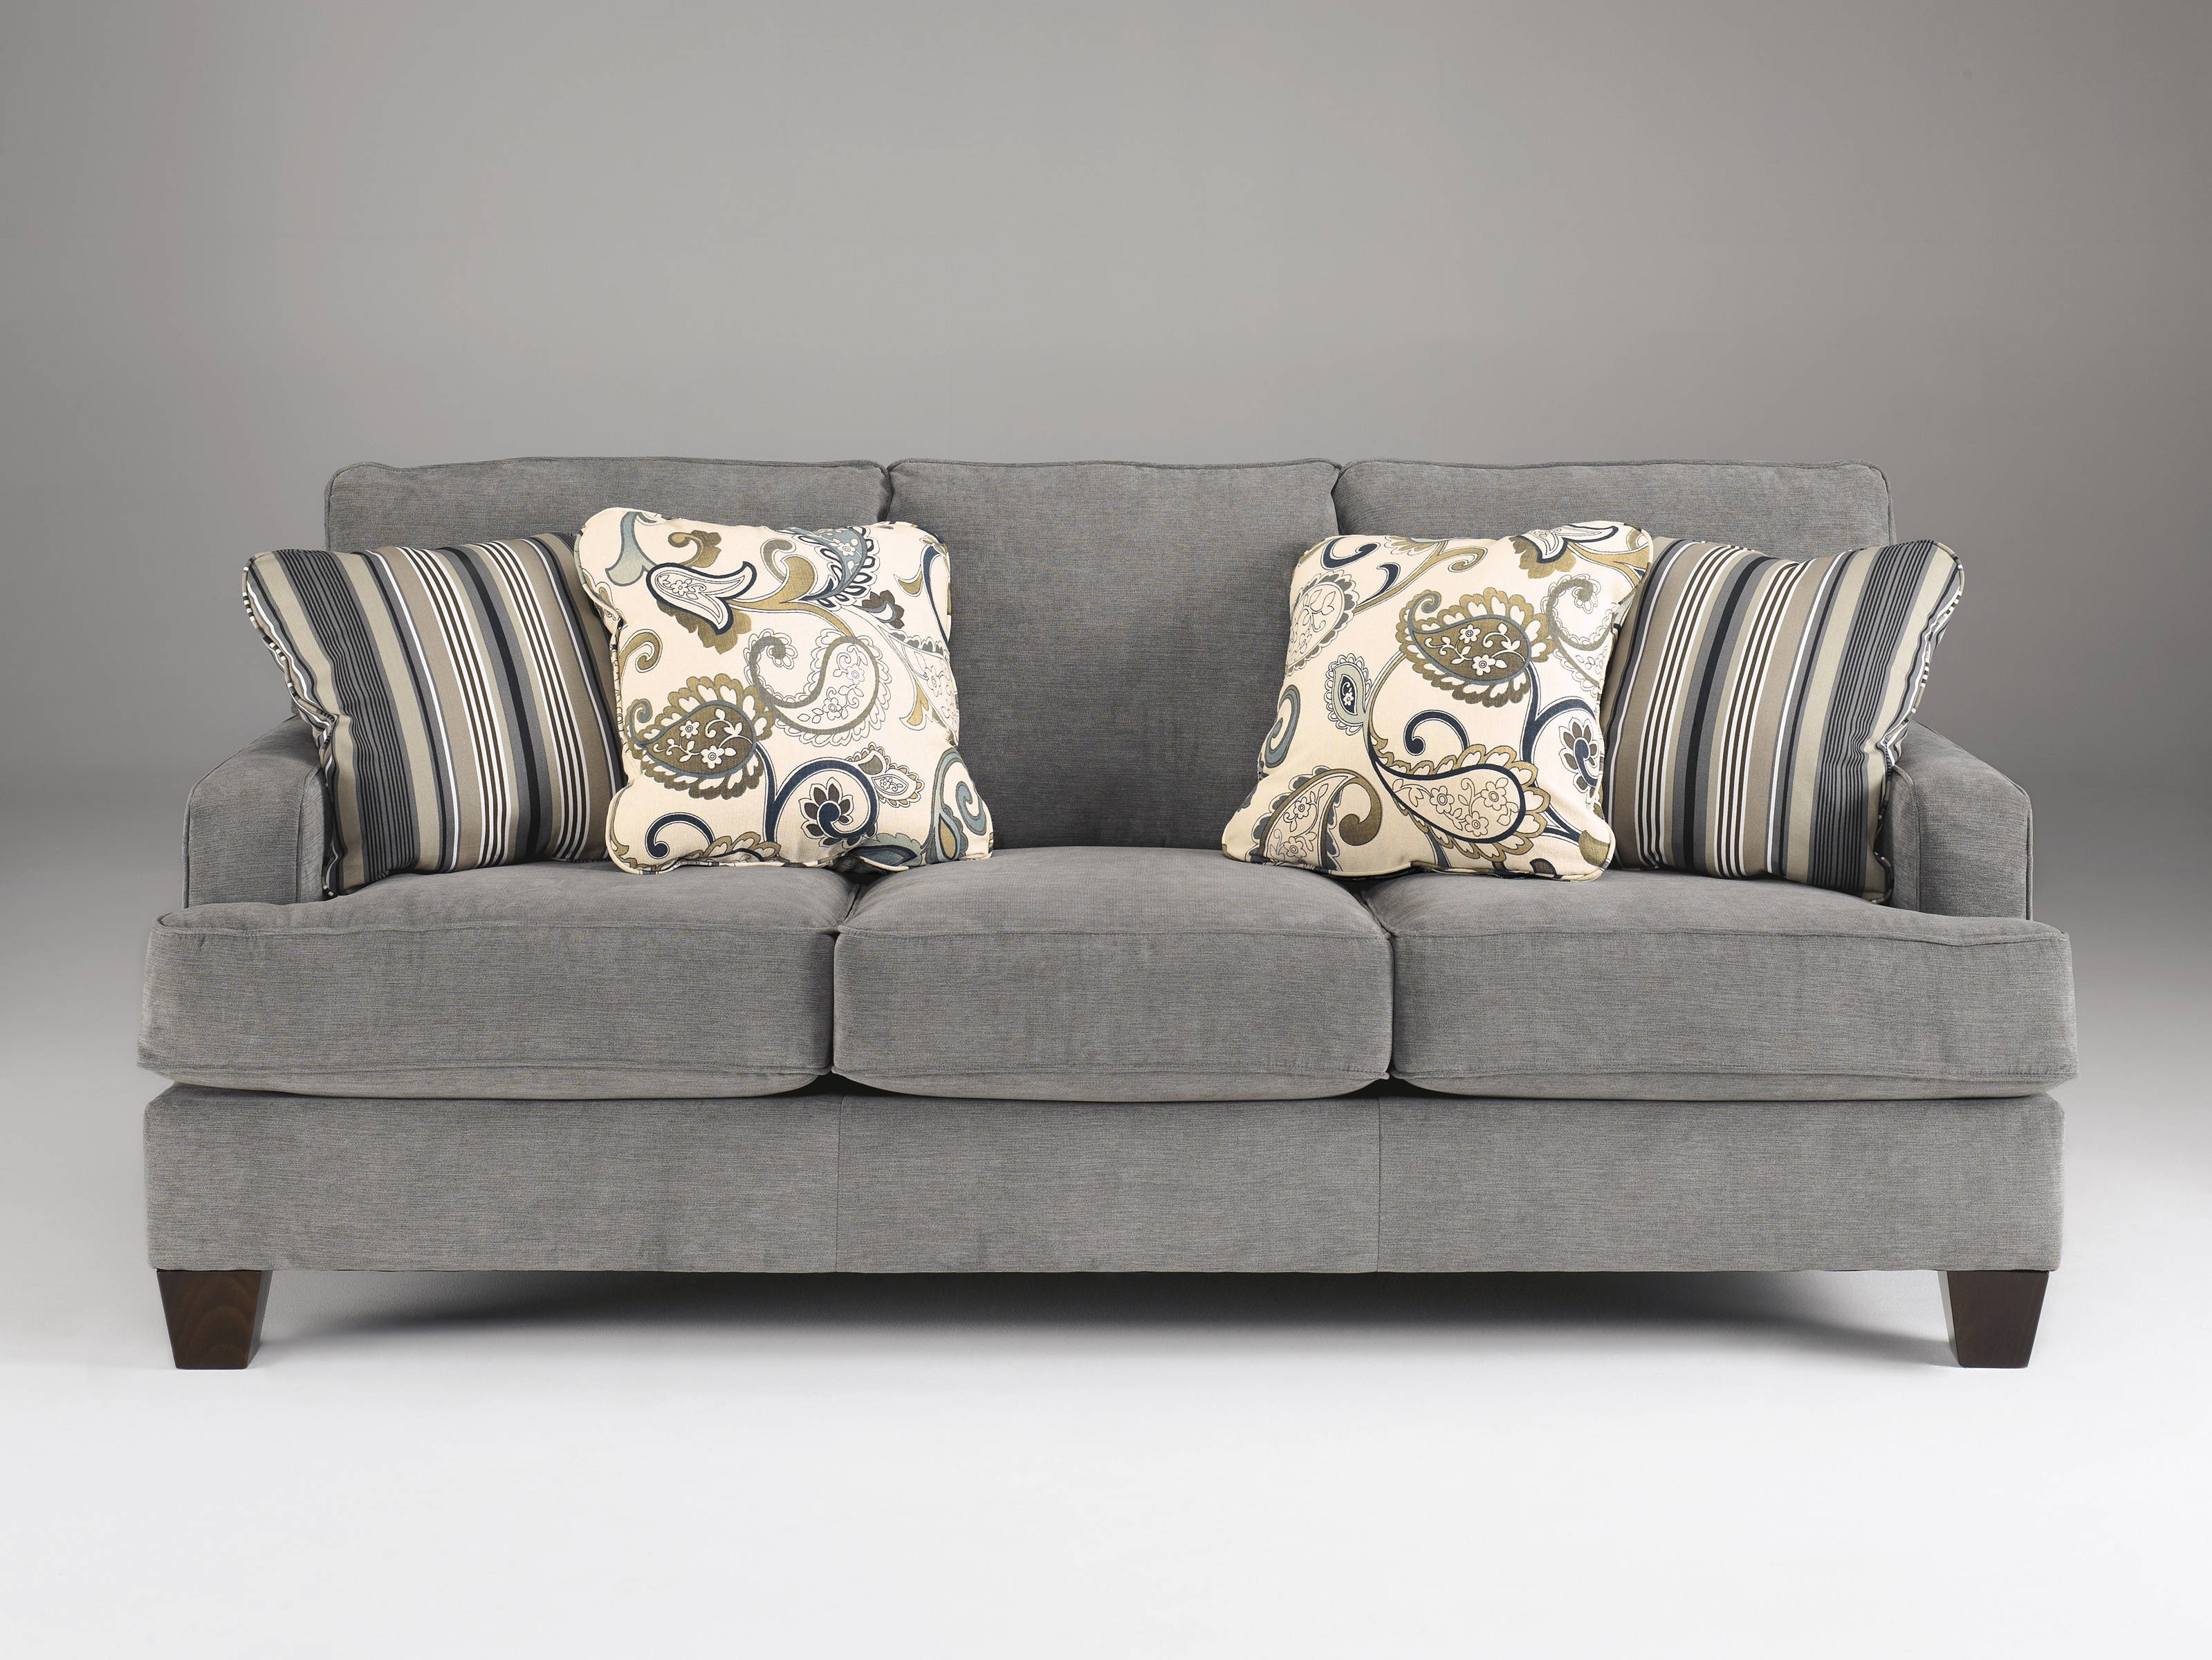 Yvette Casual Steel Gray Fabric Cushion Back Sofa Living Rooms With Regard To Ashley Furniture Gray Sofa (Photo 10 of 15)